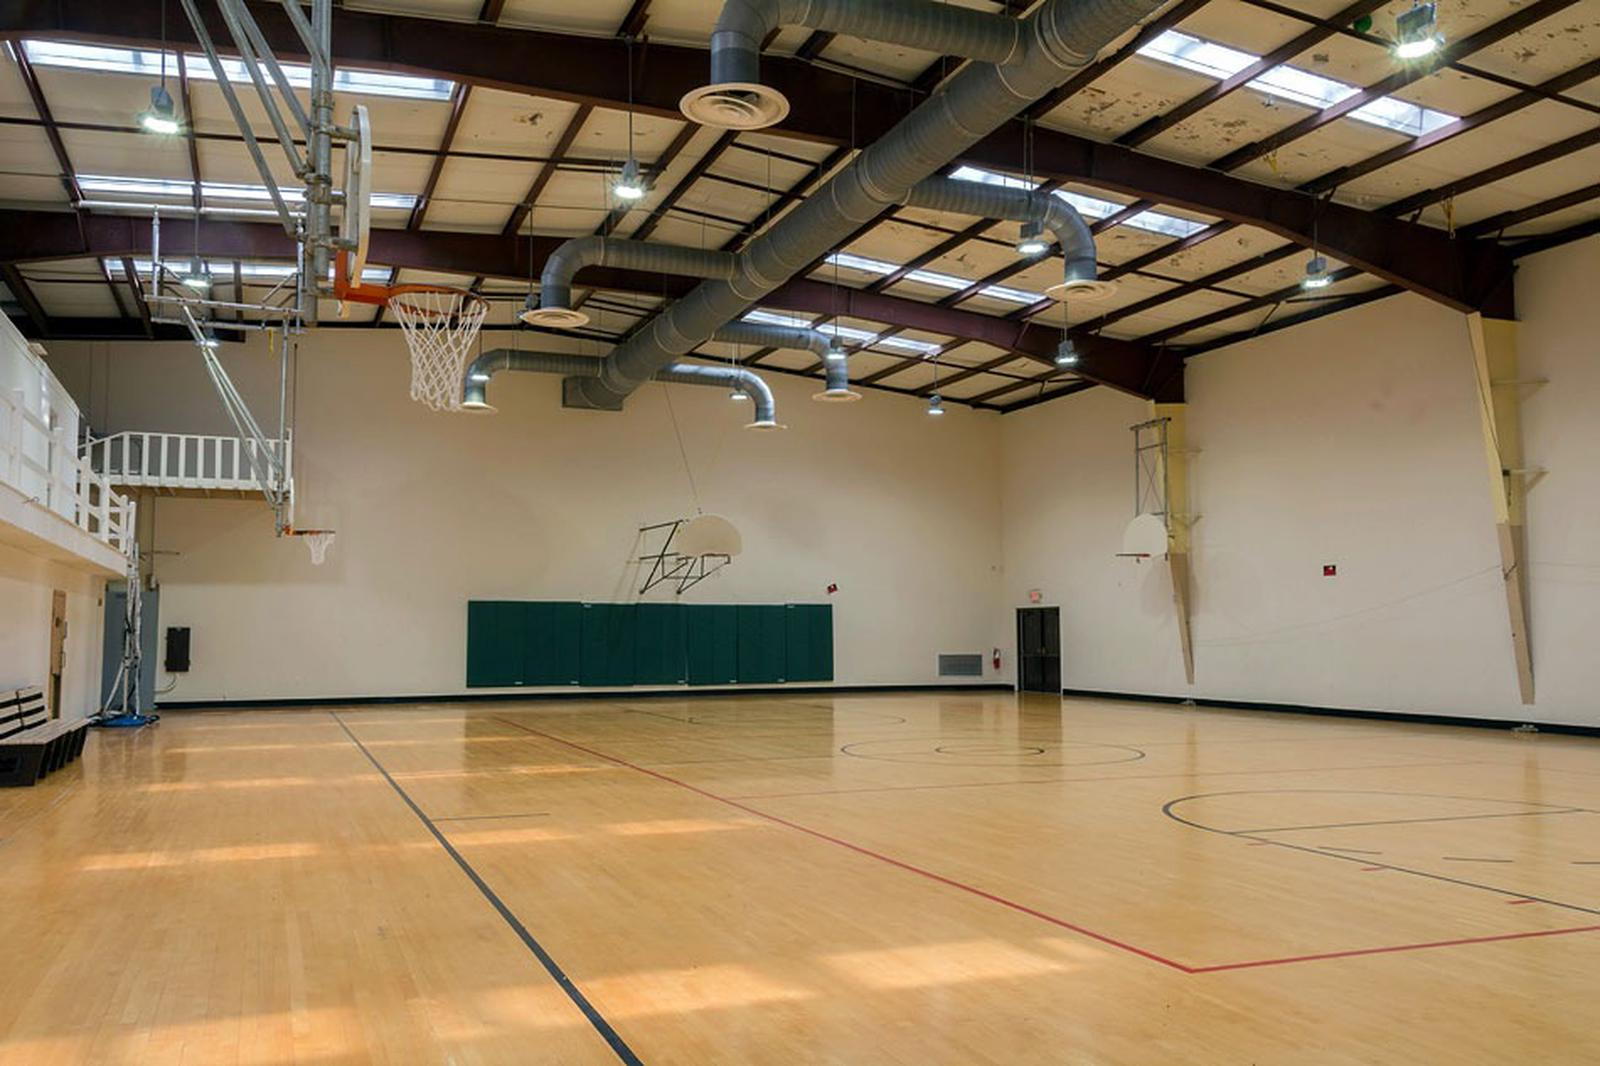 Interior view of gymnasium.  Standard size wooden marked floor with 6 basketball backboards/nets.Interior view of gymnasium.  Standard size wooden marked floor with 6 basketball backboards/nets.  The building has air conditioning and heat.  Four small classrooms are accessible from the gymnasium.